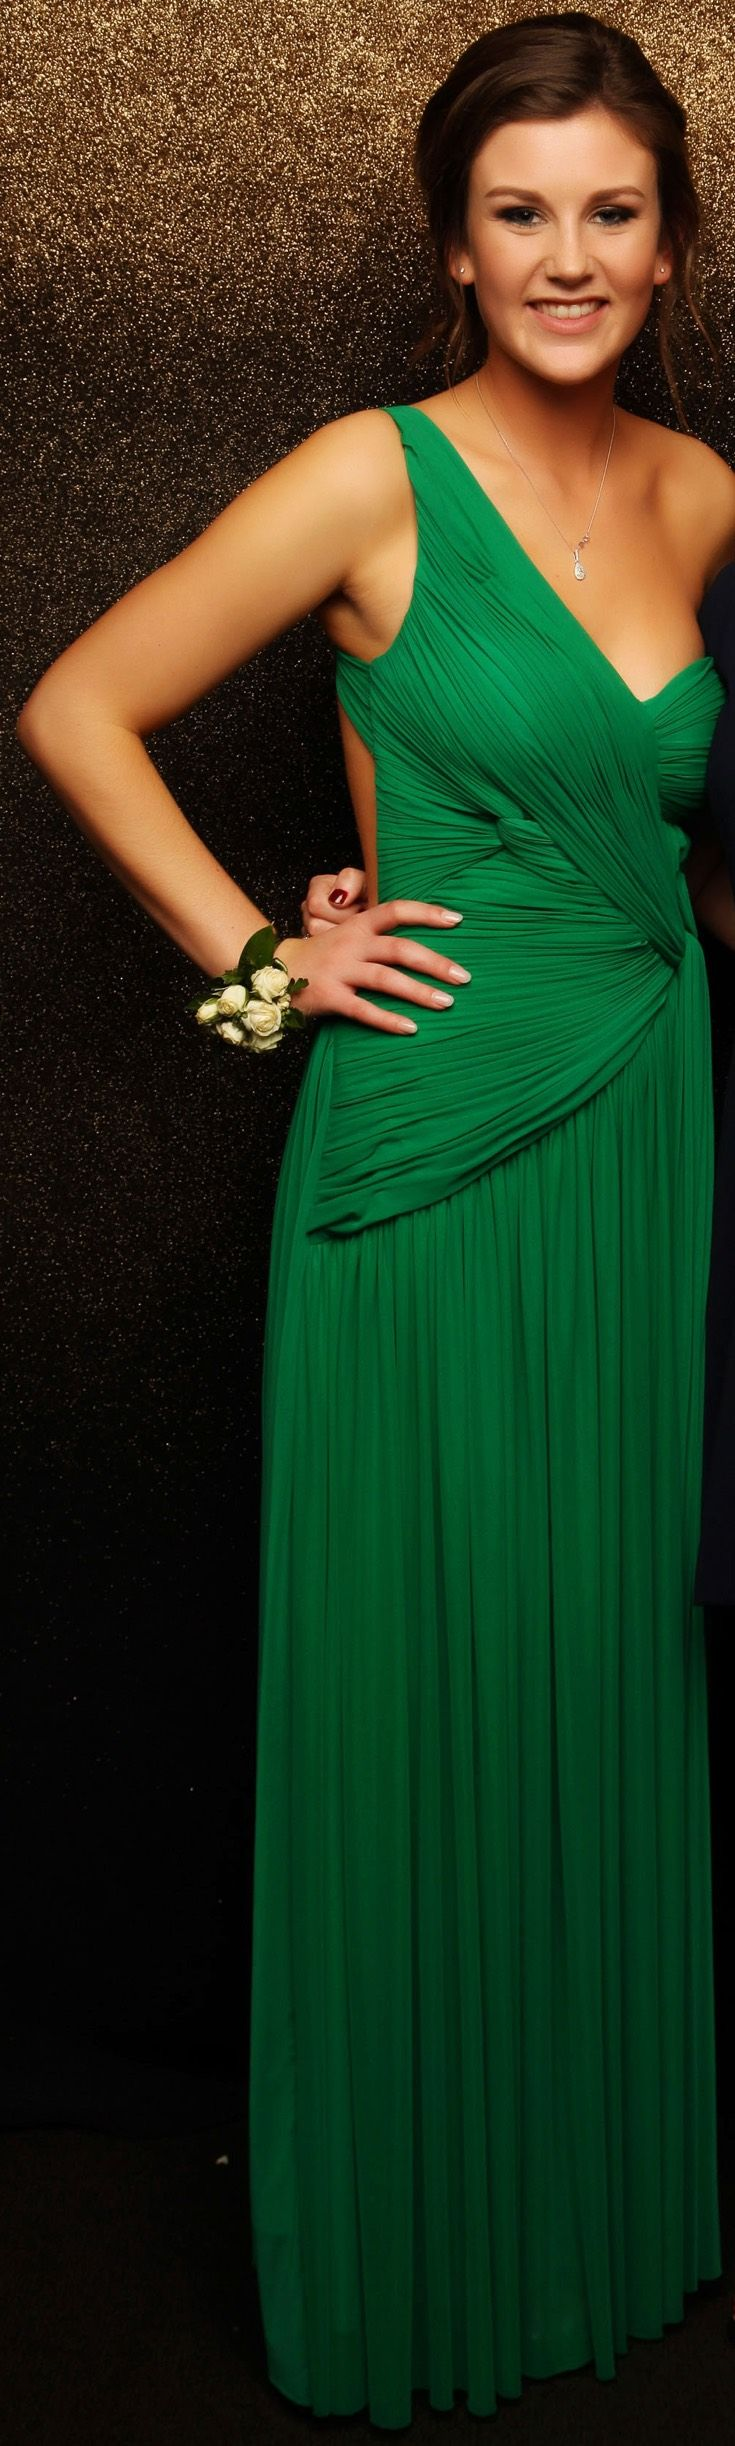 Alberto McCauley Green Evening Gown